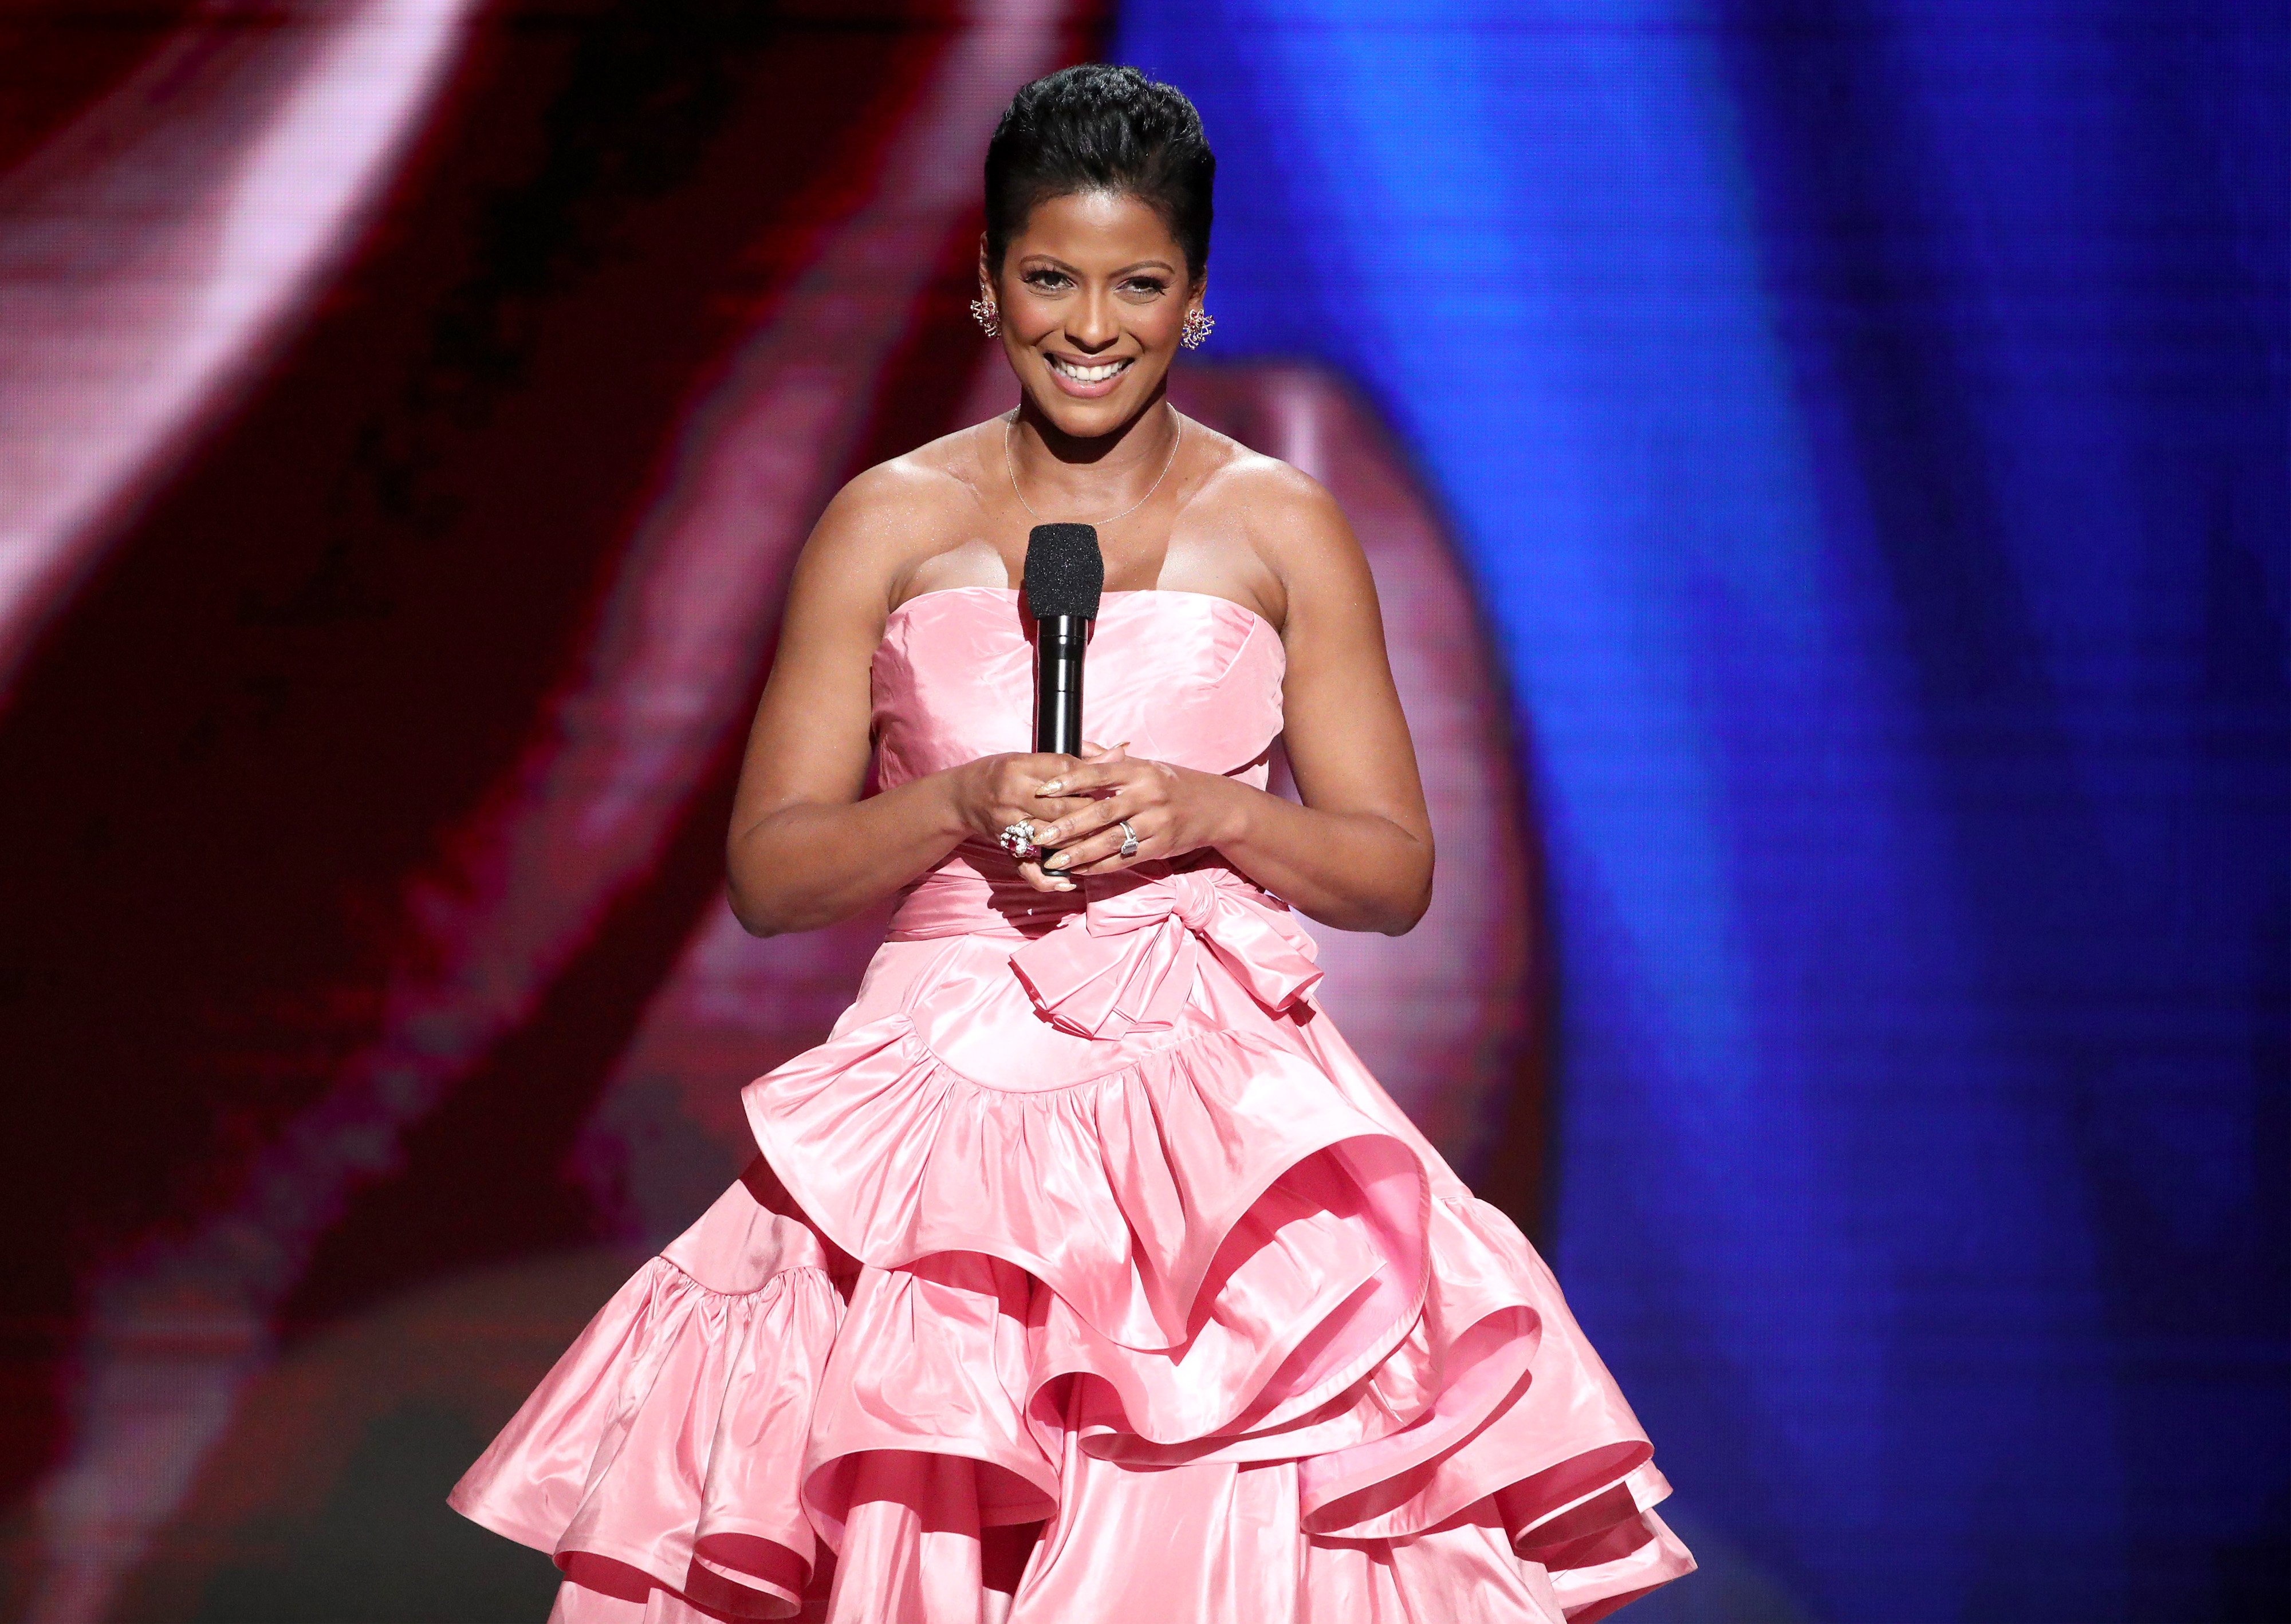 Tamron Hall speaks onstage during the 51st NAACP Image Awards, Presented by BET, at Pasadena Civic Auditorium on February 22, 2020 in Pasadena, California | Photo: GettyImages